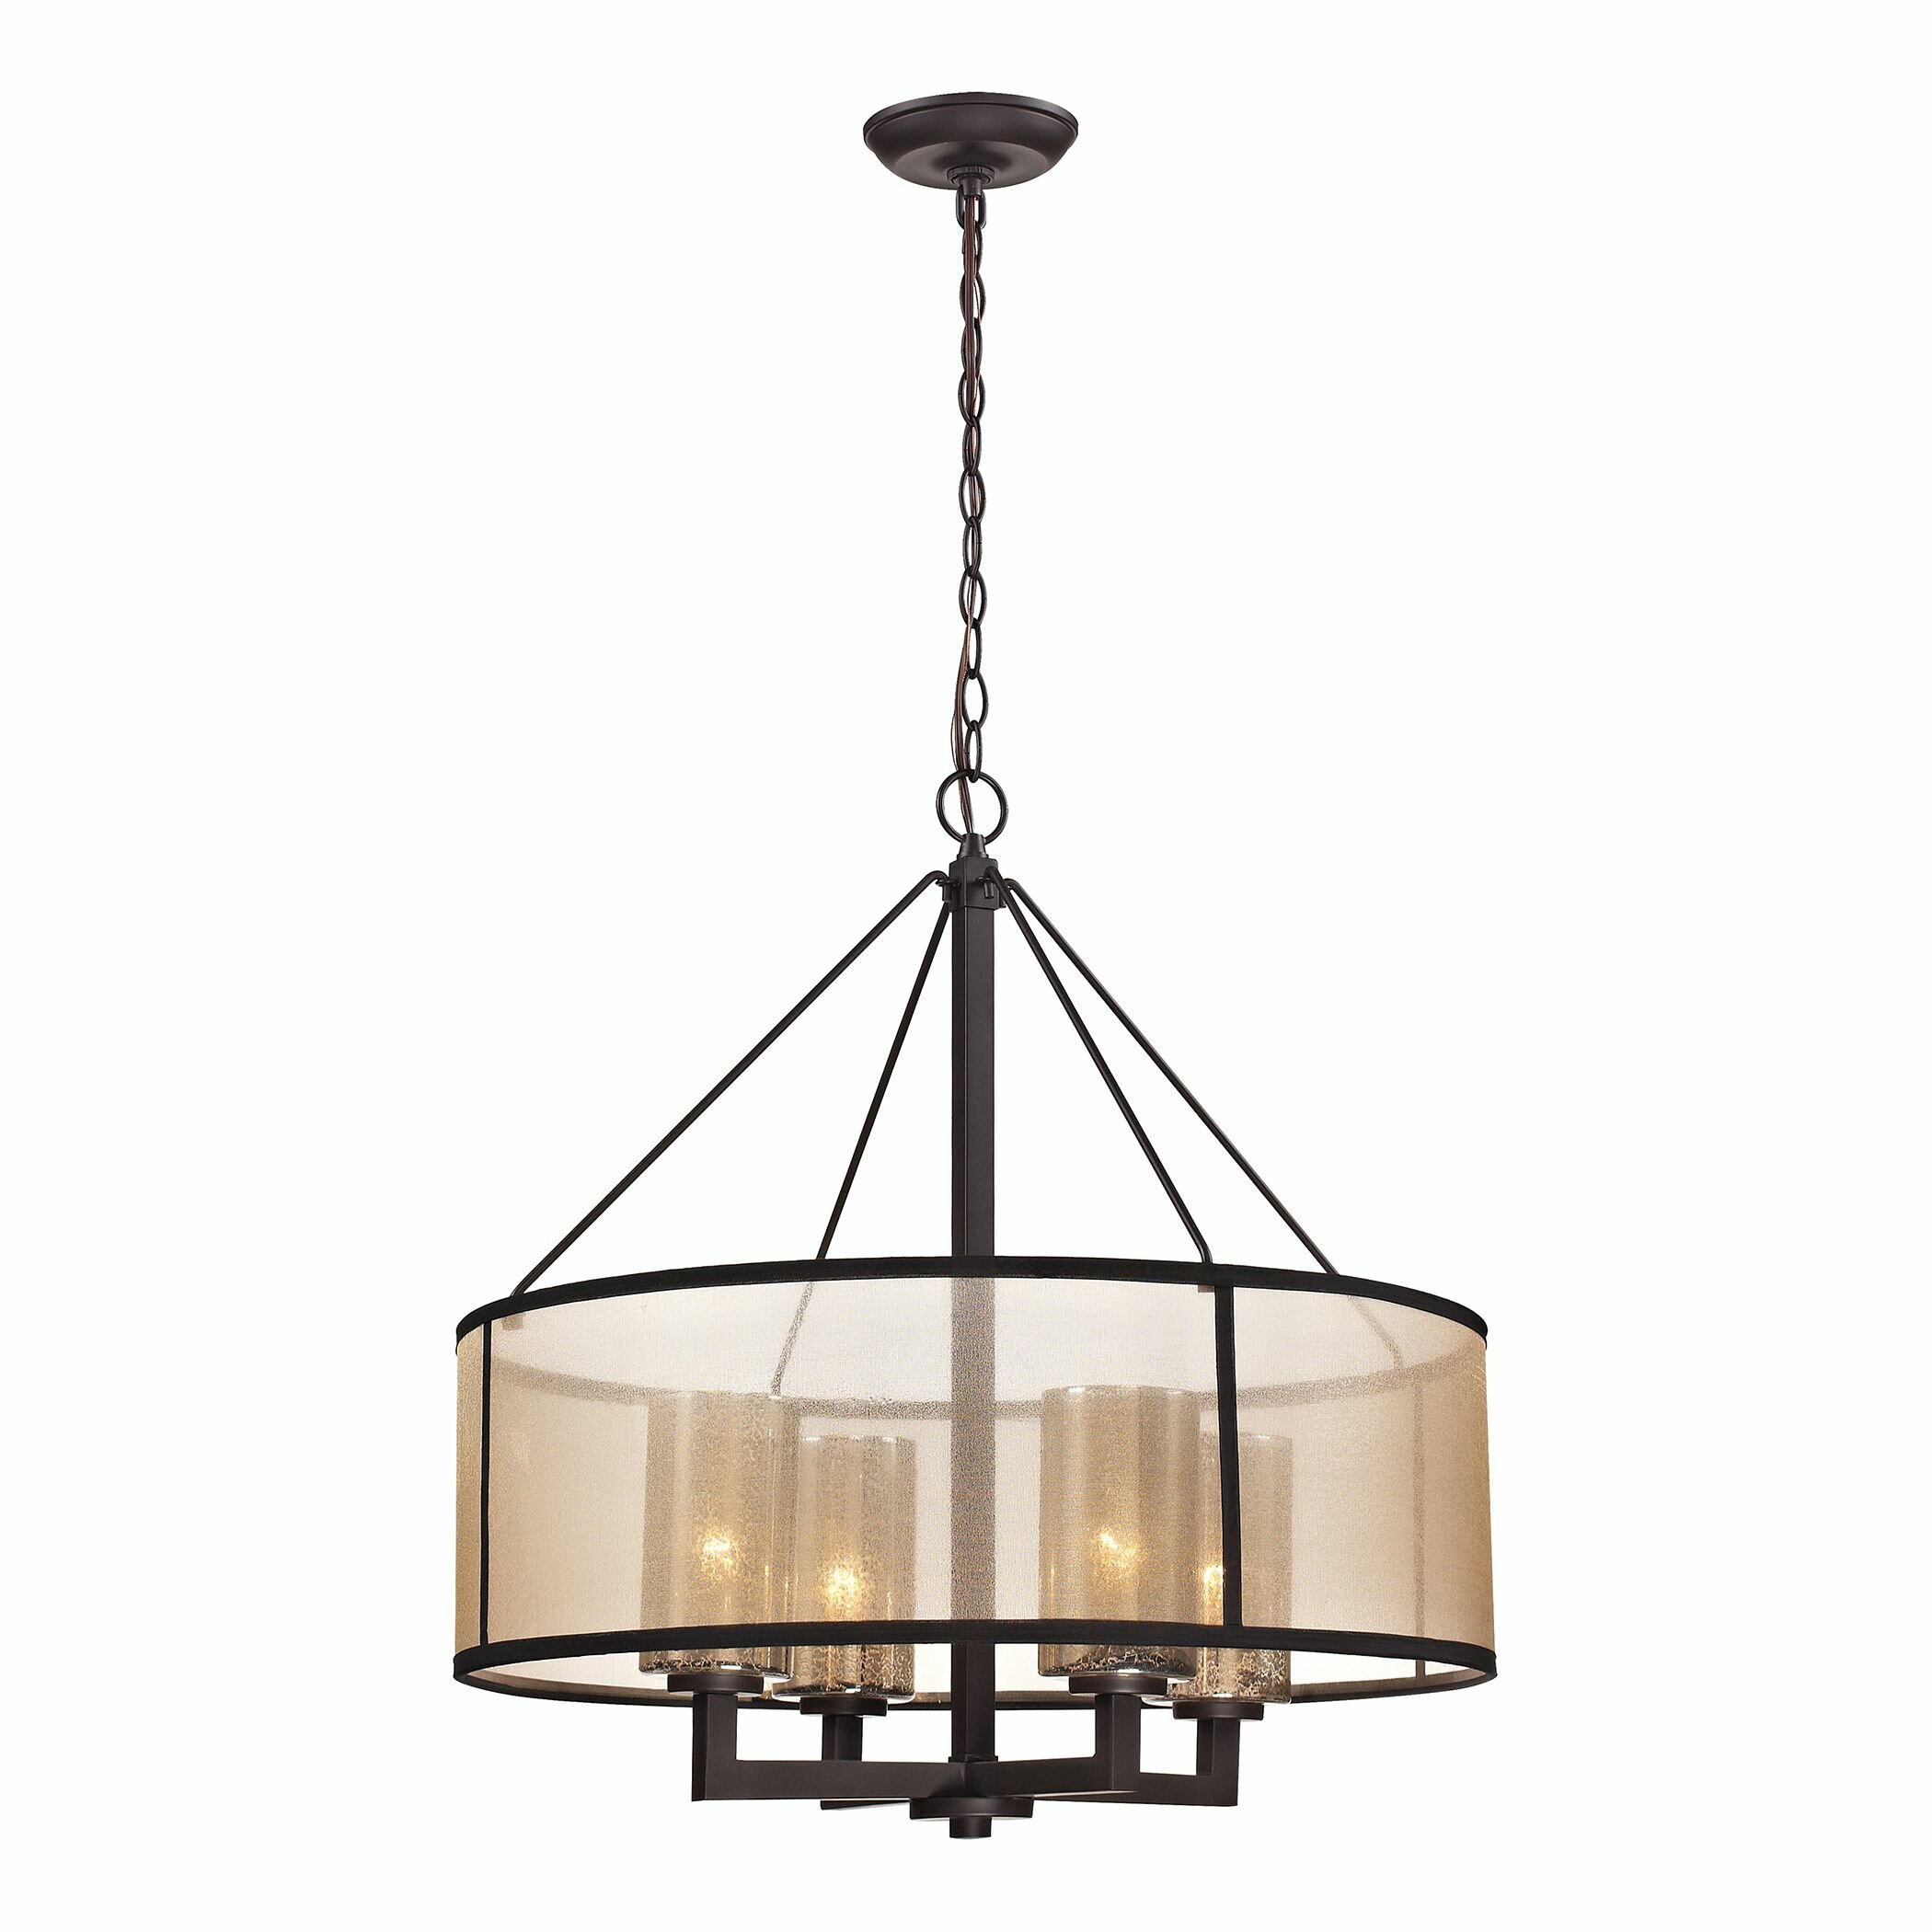 Wayfair Chandelier: Brayden Studio Dailey 4 Light Drum Chandelier & Reviews